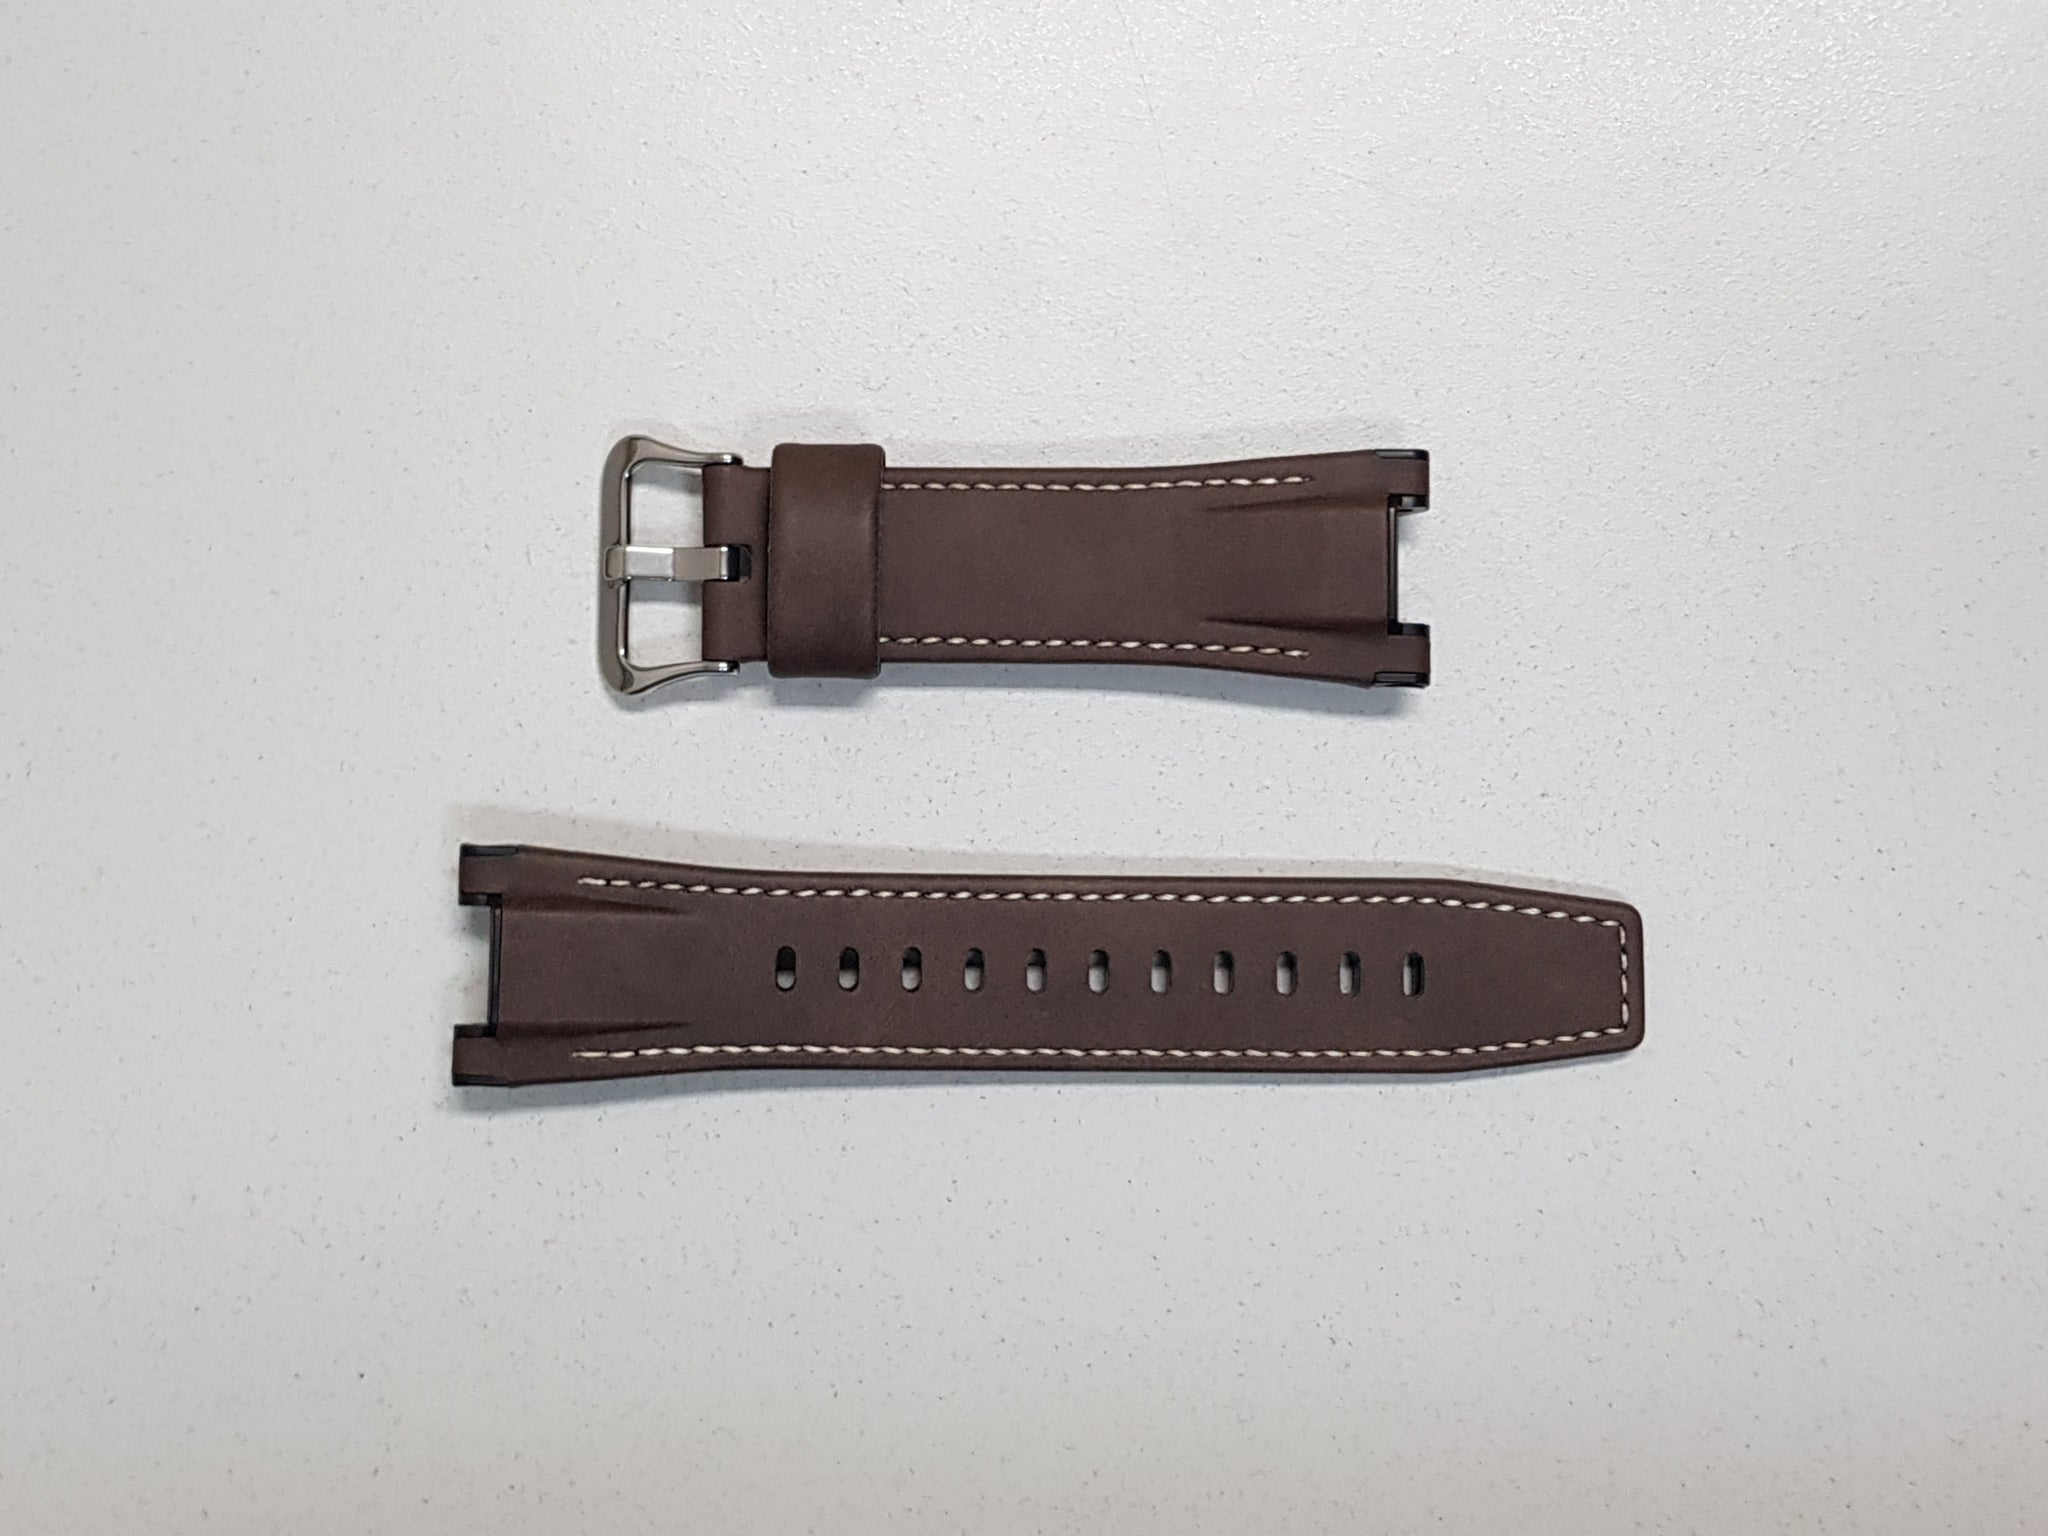 BROWN LEATHER BAND (10540150) - G-SHOCK